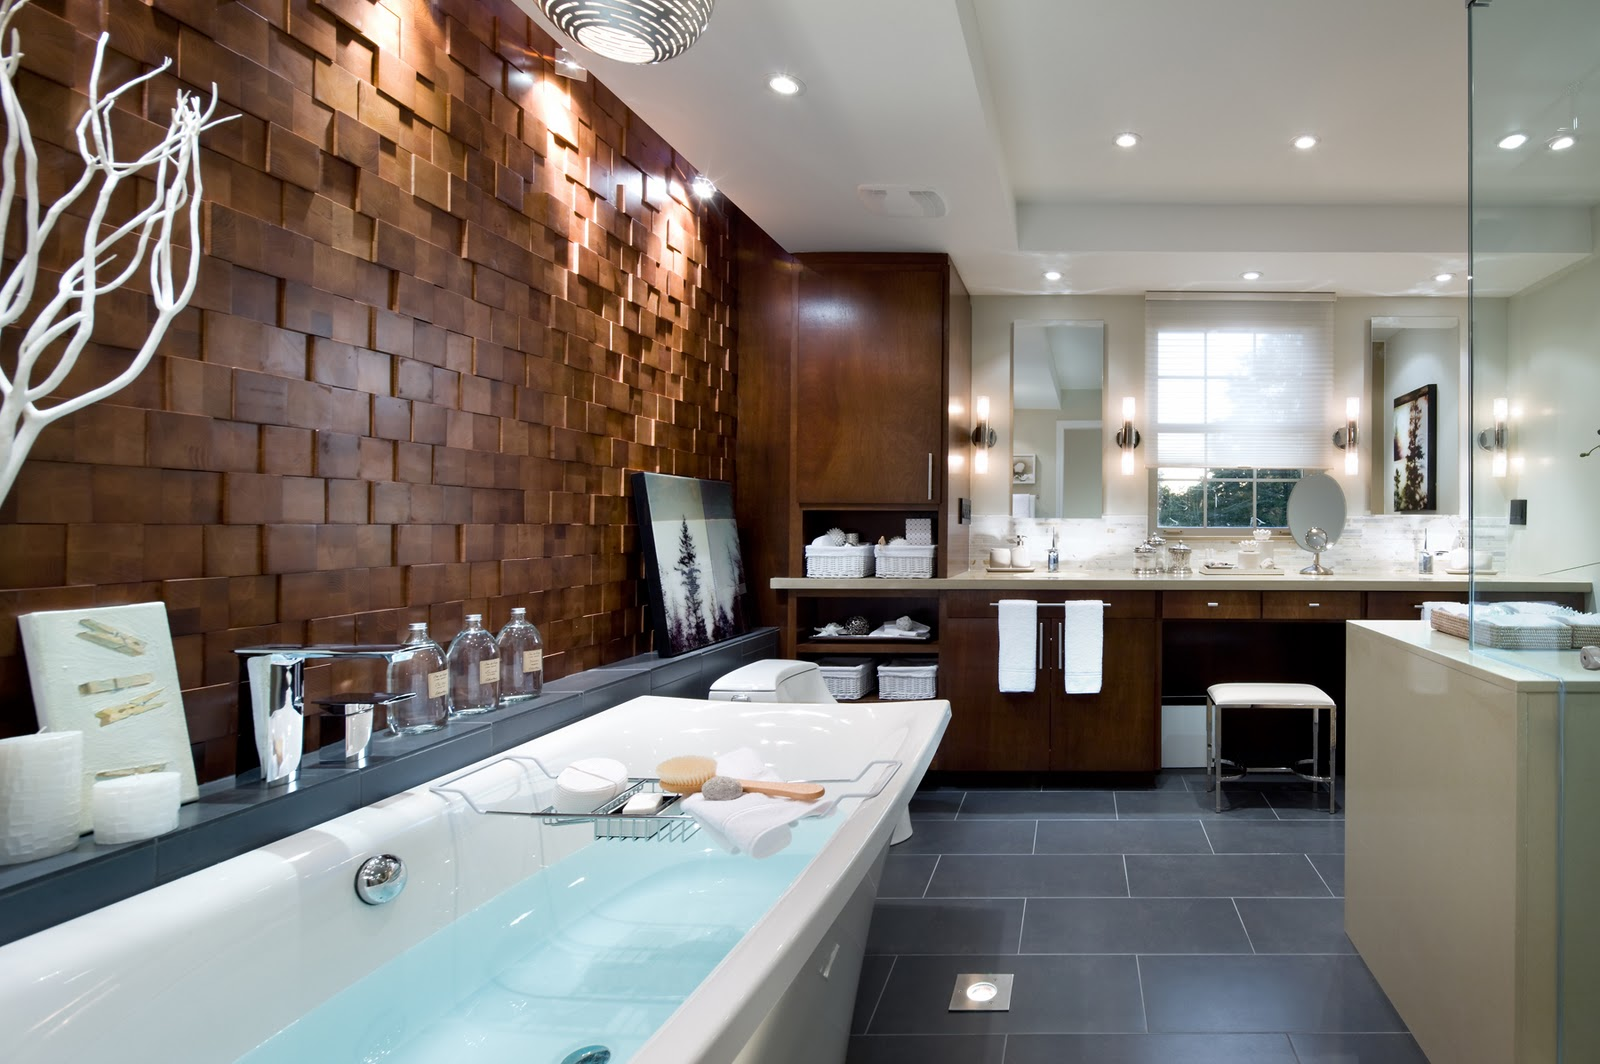 5 Stunning Bathrooms By Candice Olson: Interior Decorating Accessories